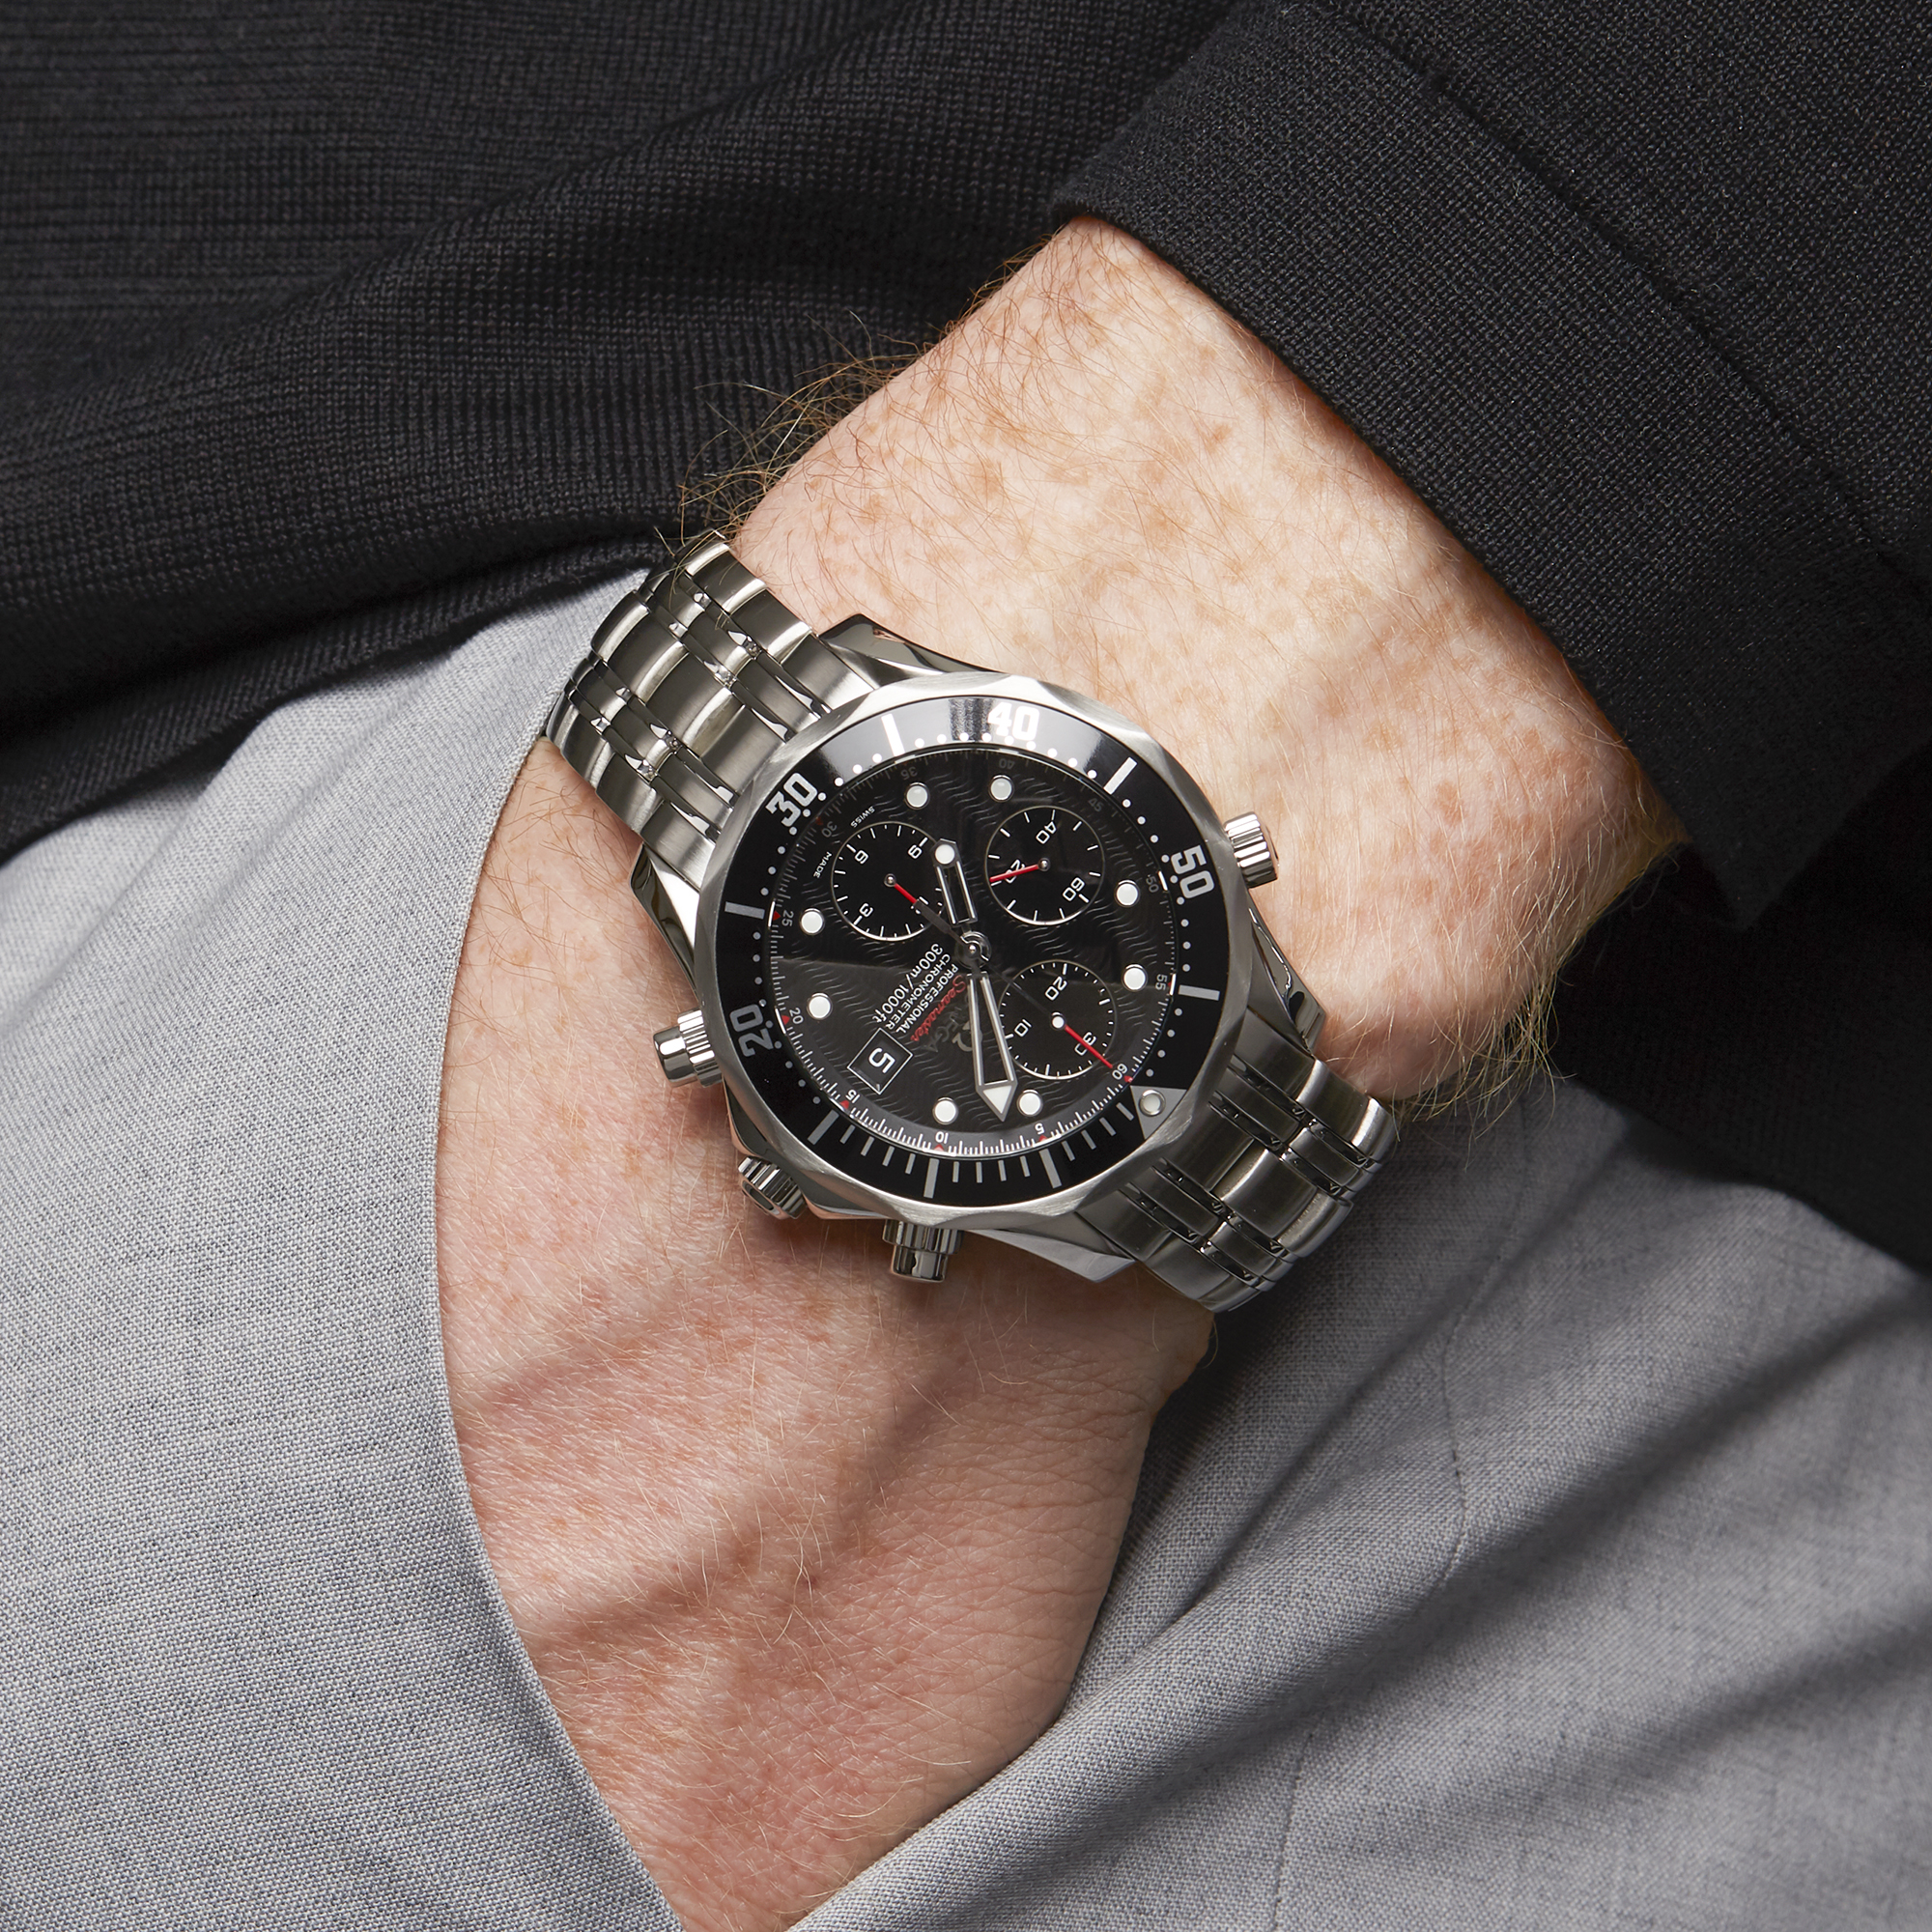 Omega Seamaster 0 213.30.42.40.01.001 Men Stainless Steel Chronograph Watch - Image 2 of 9